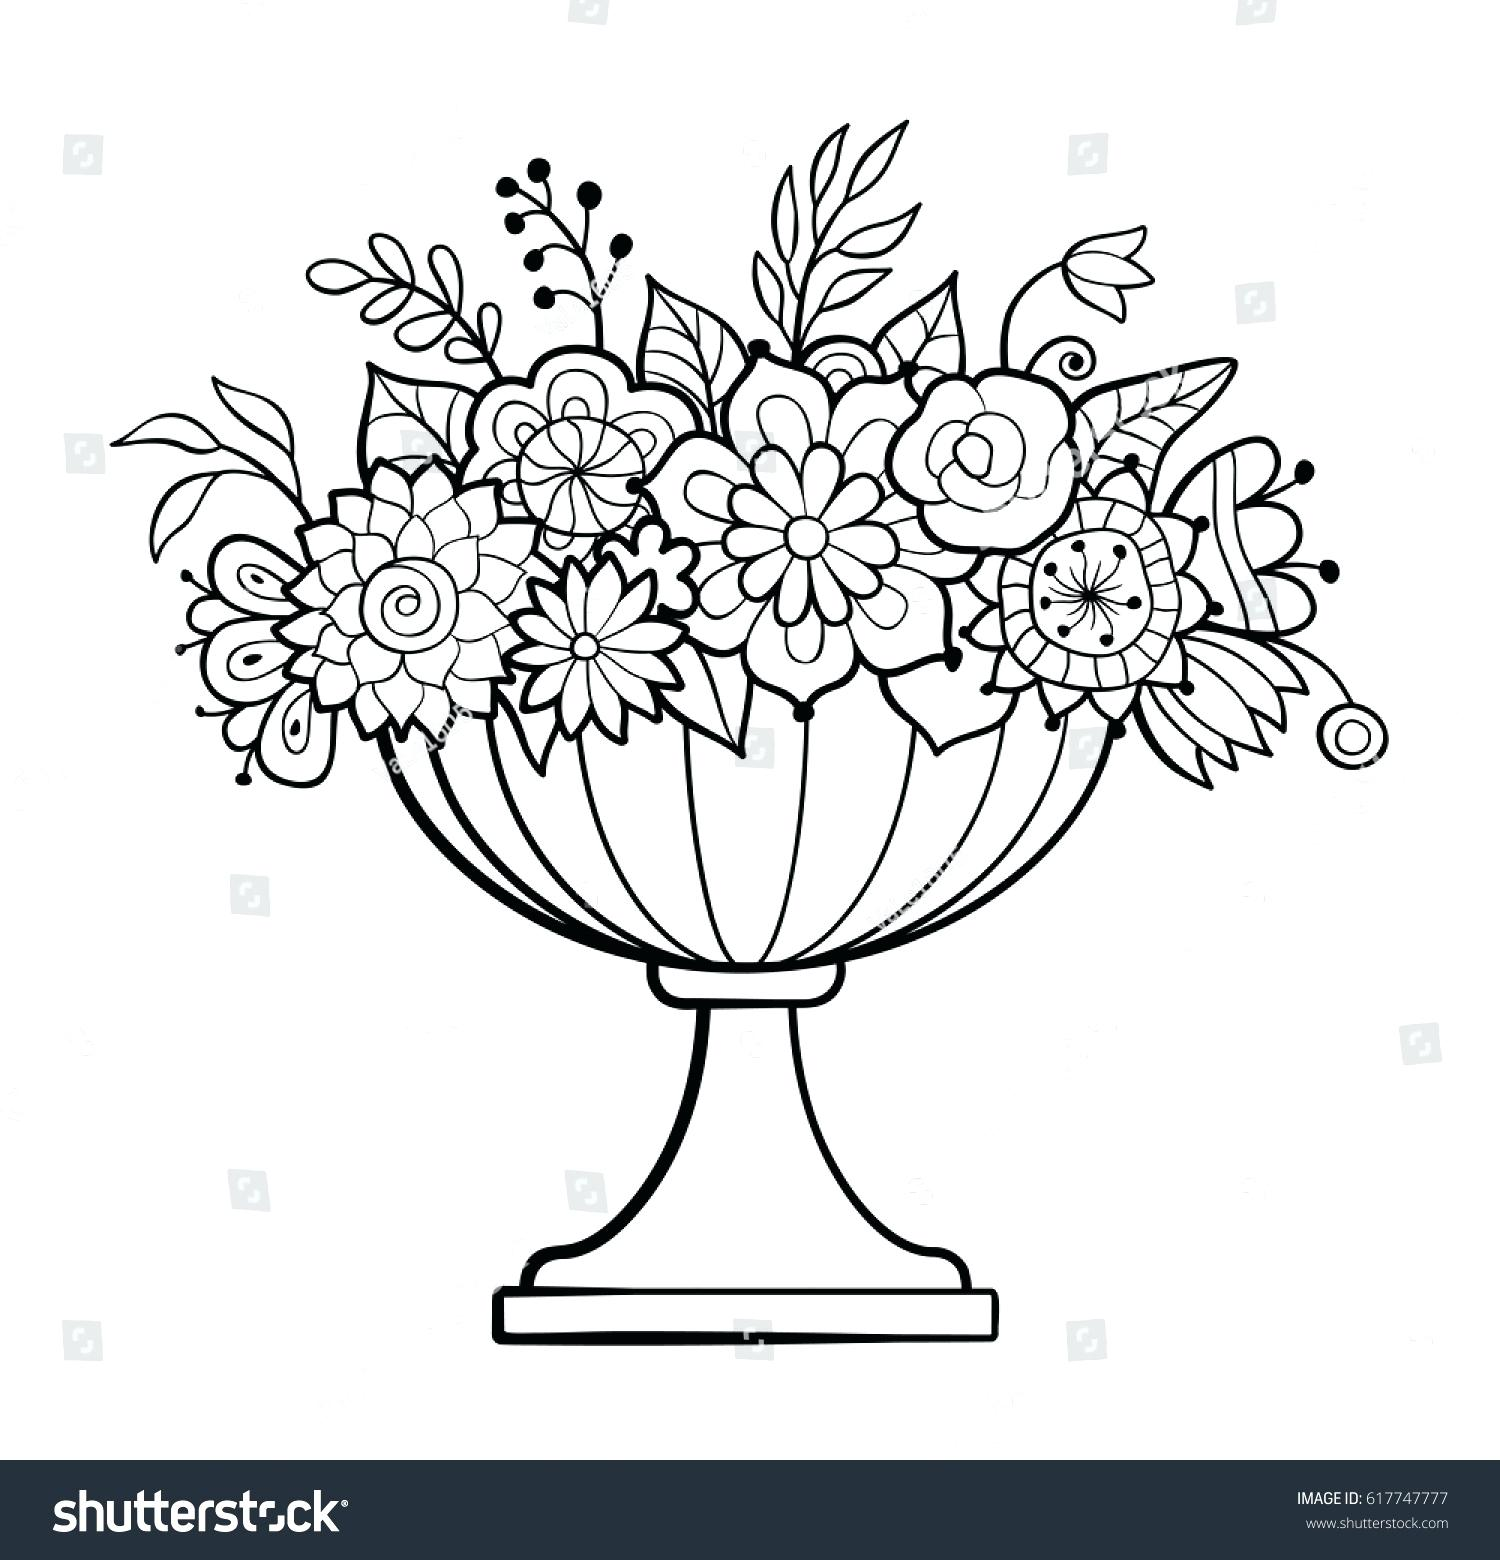 Flowerpot Drawing at GetDrawings.com   Free for personal use ...